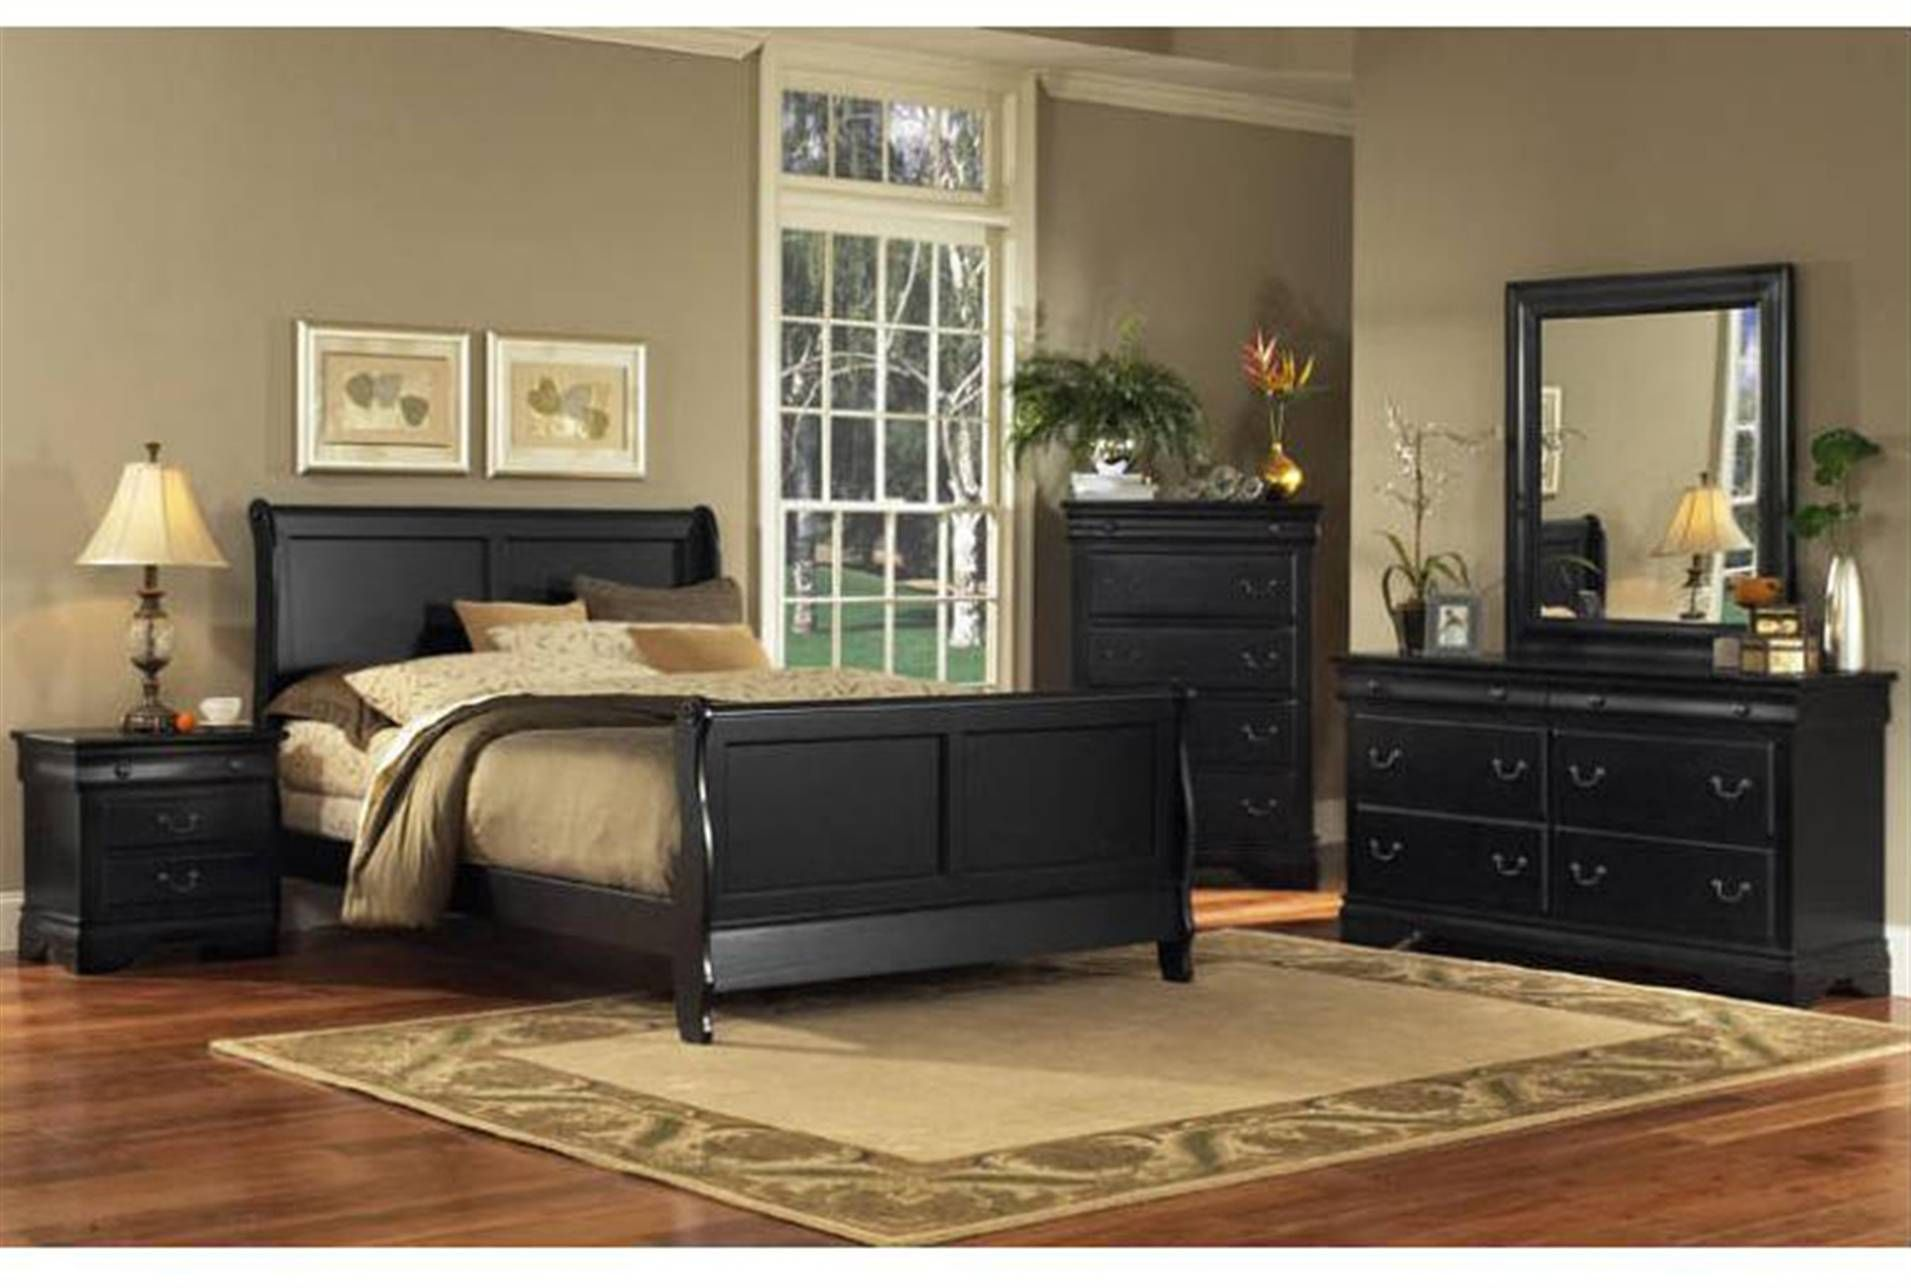 Clayton Cherrywood - Very nice bedroom set, that I would ...